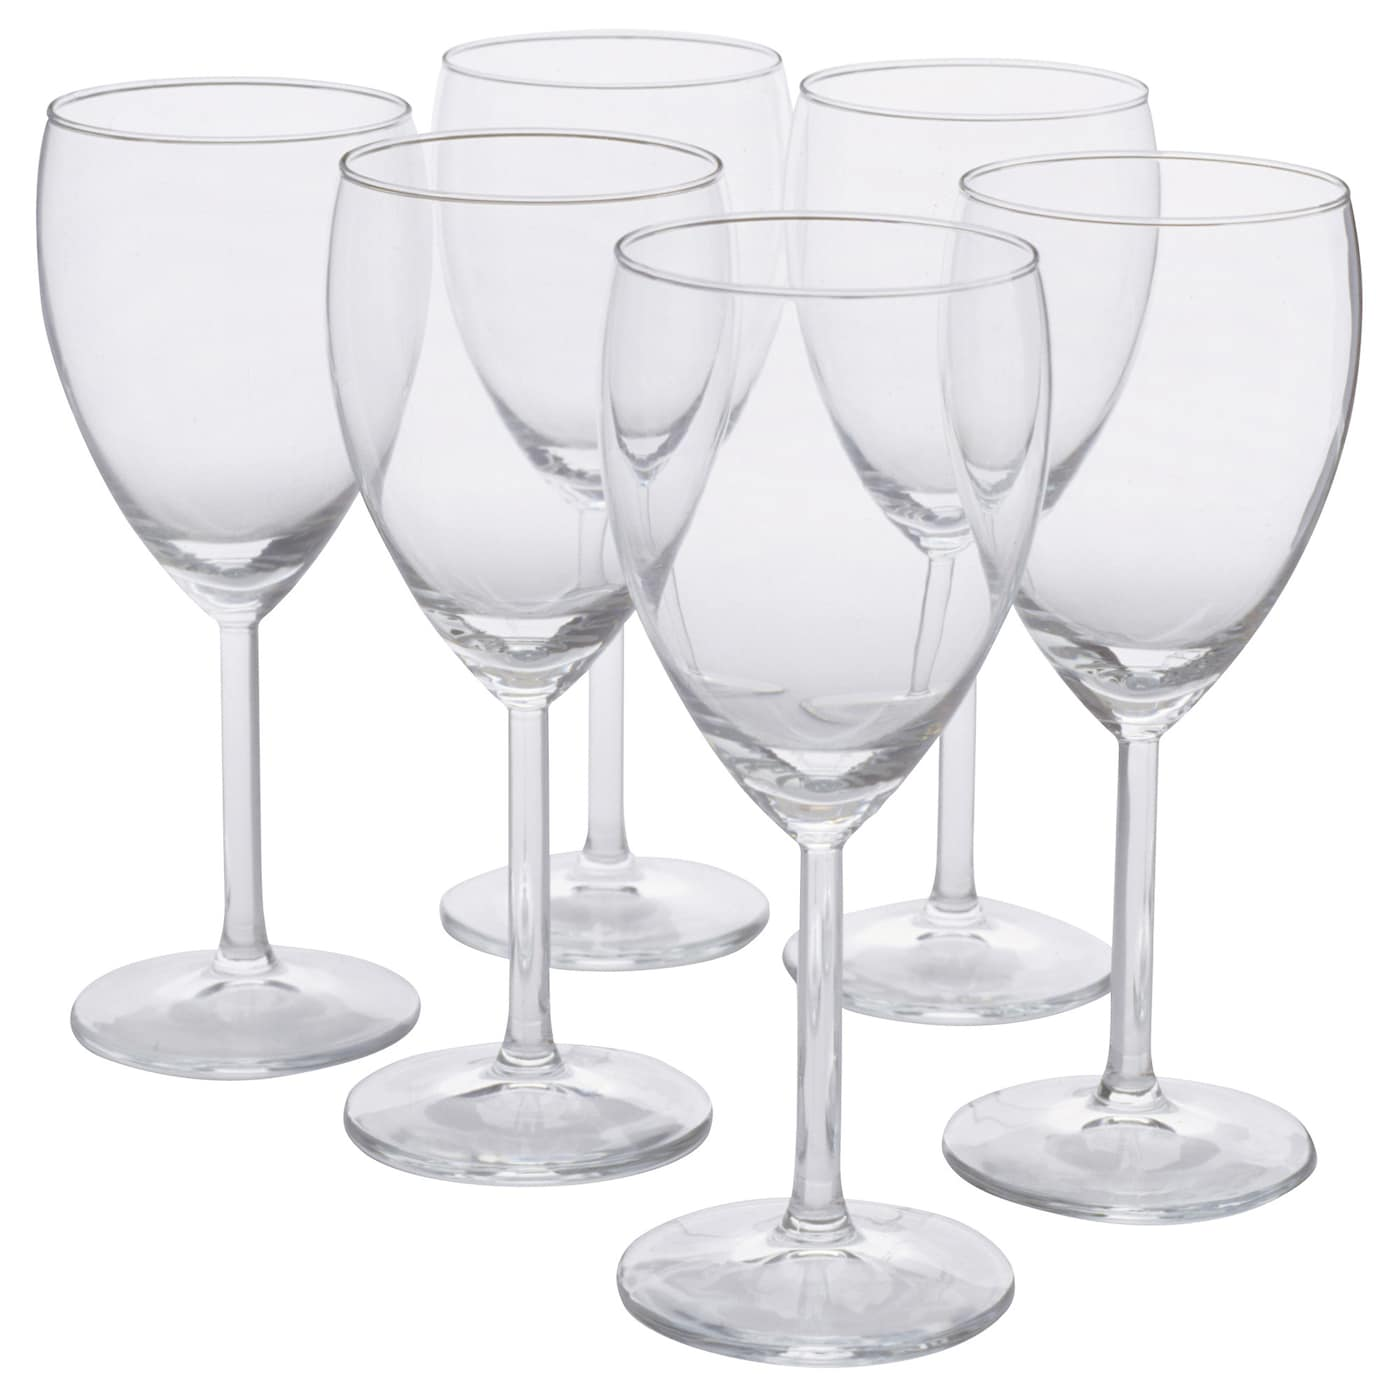 IKEA SVALKA white wine glass